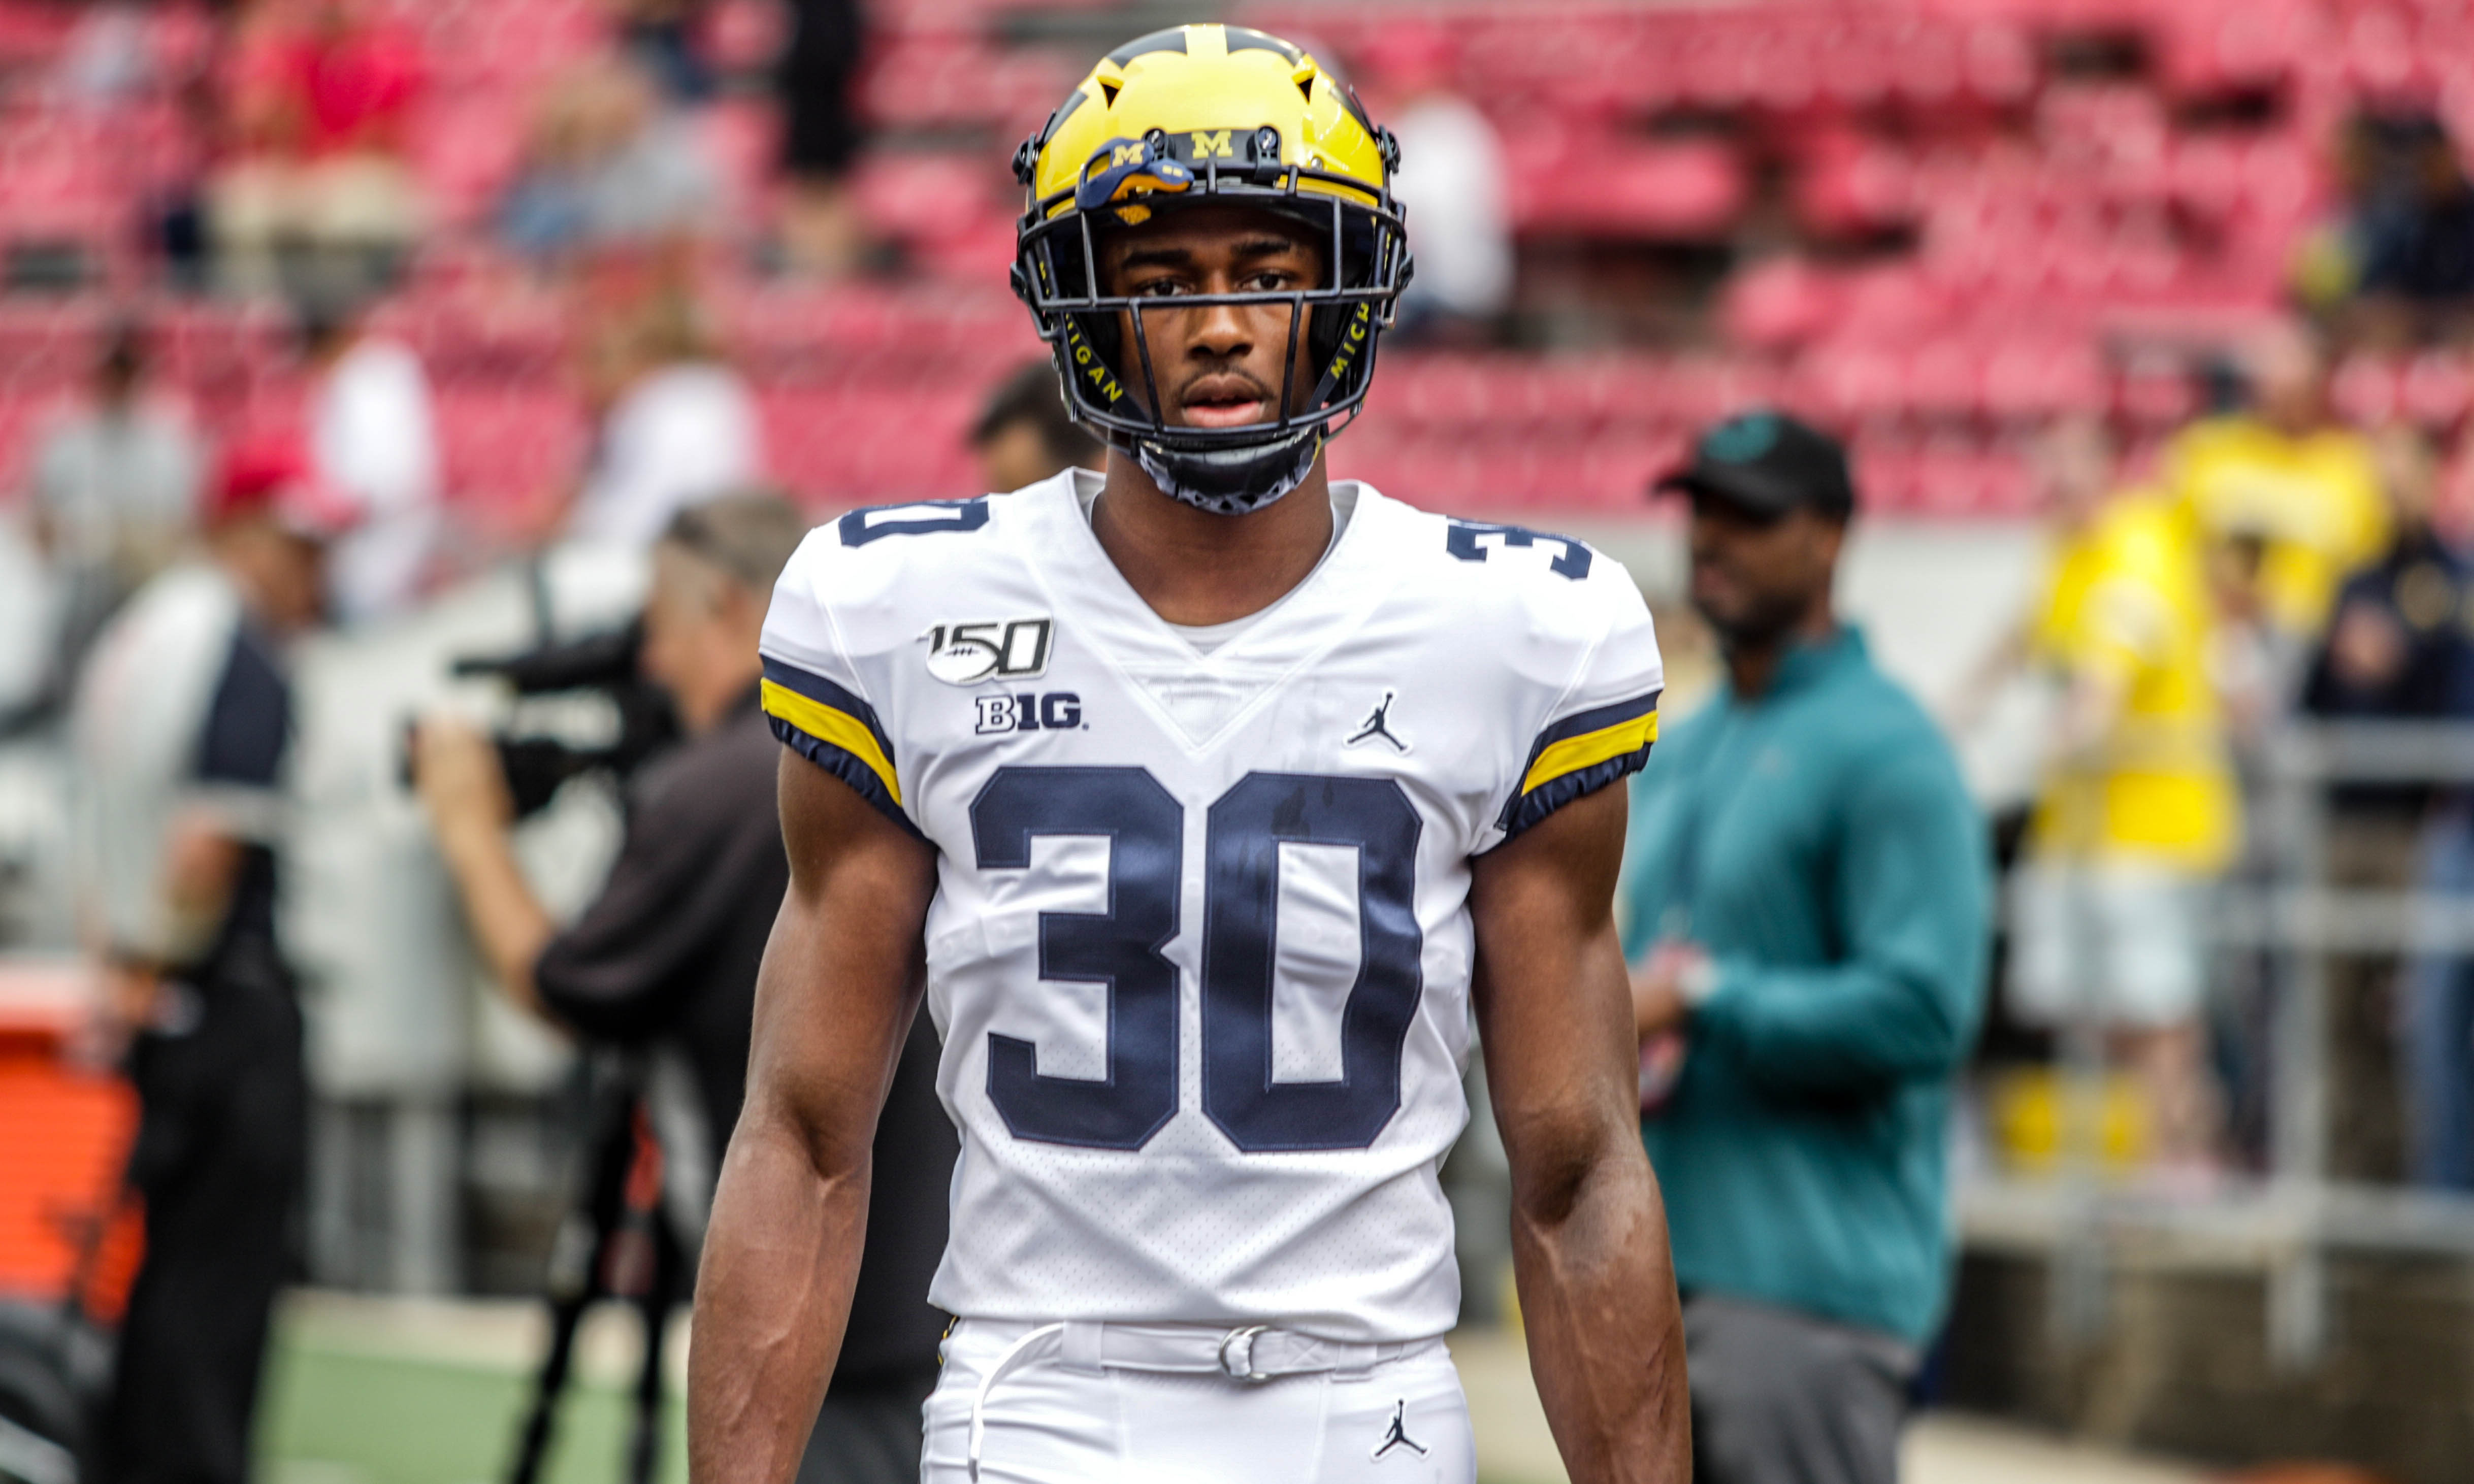 Michigan Secondary In 2020: The Best Of The Harbaugh Era?